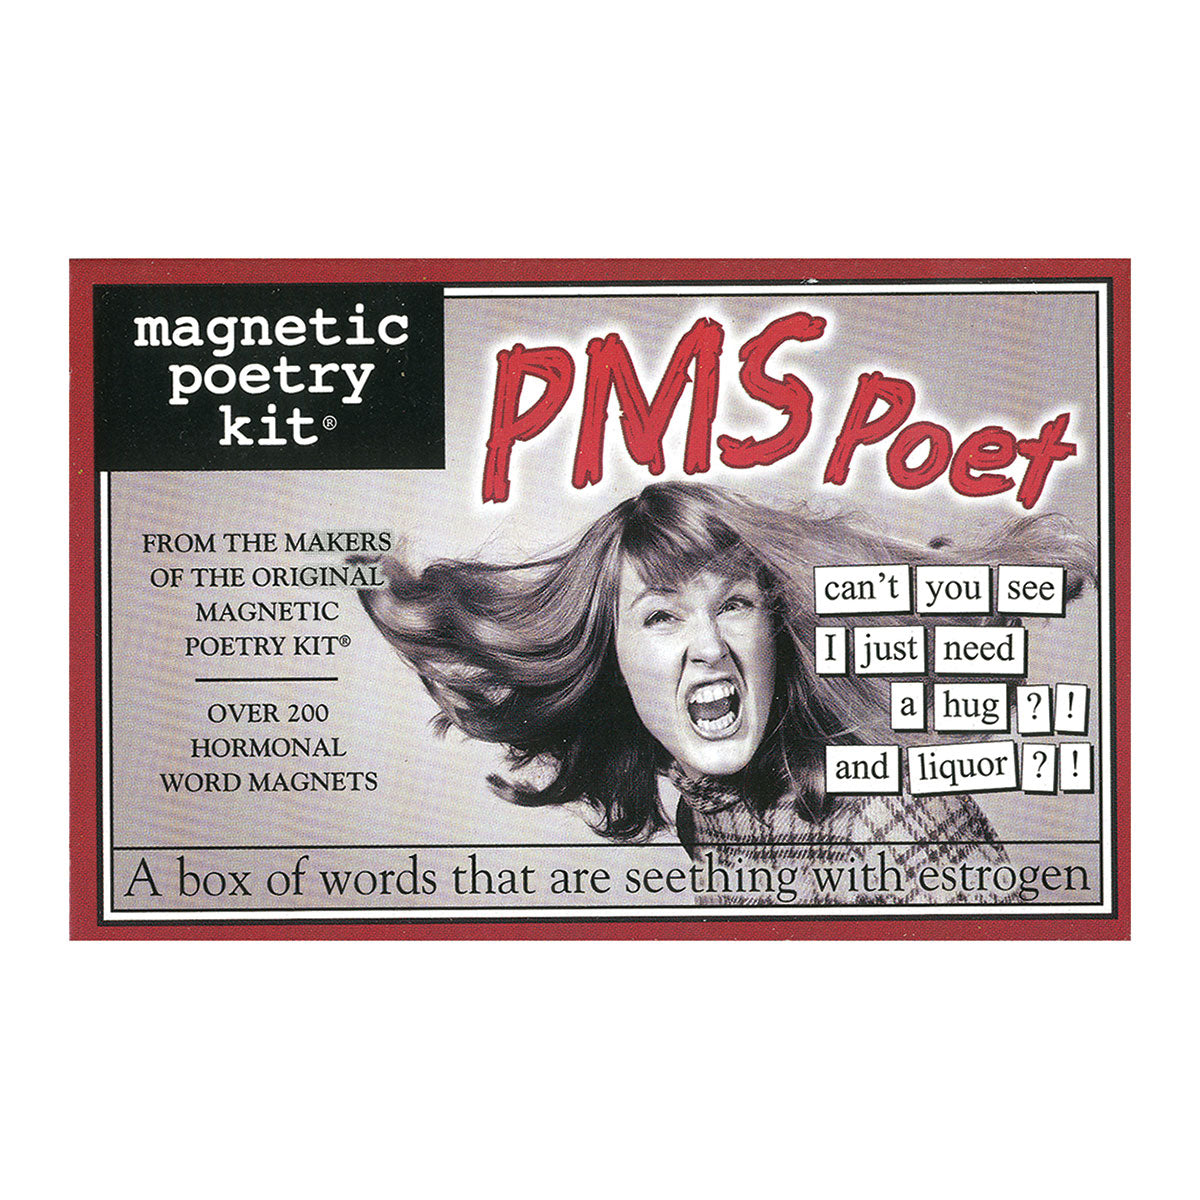 Magnetic Poetry Kit: PMS Poet